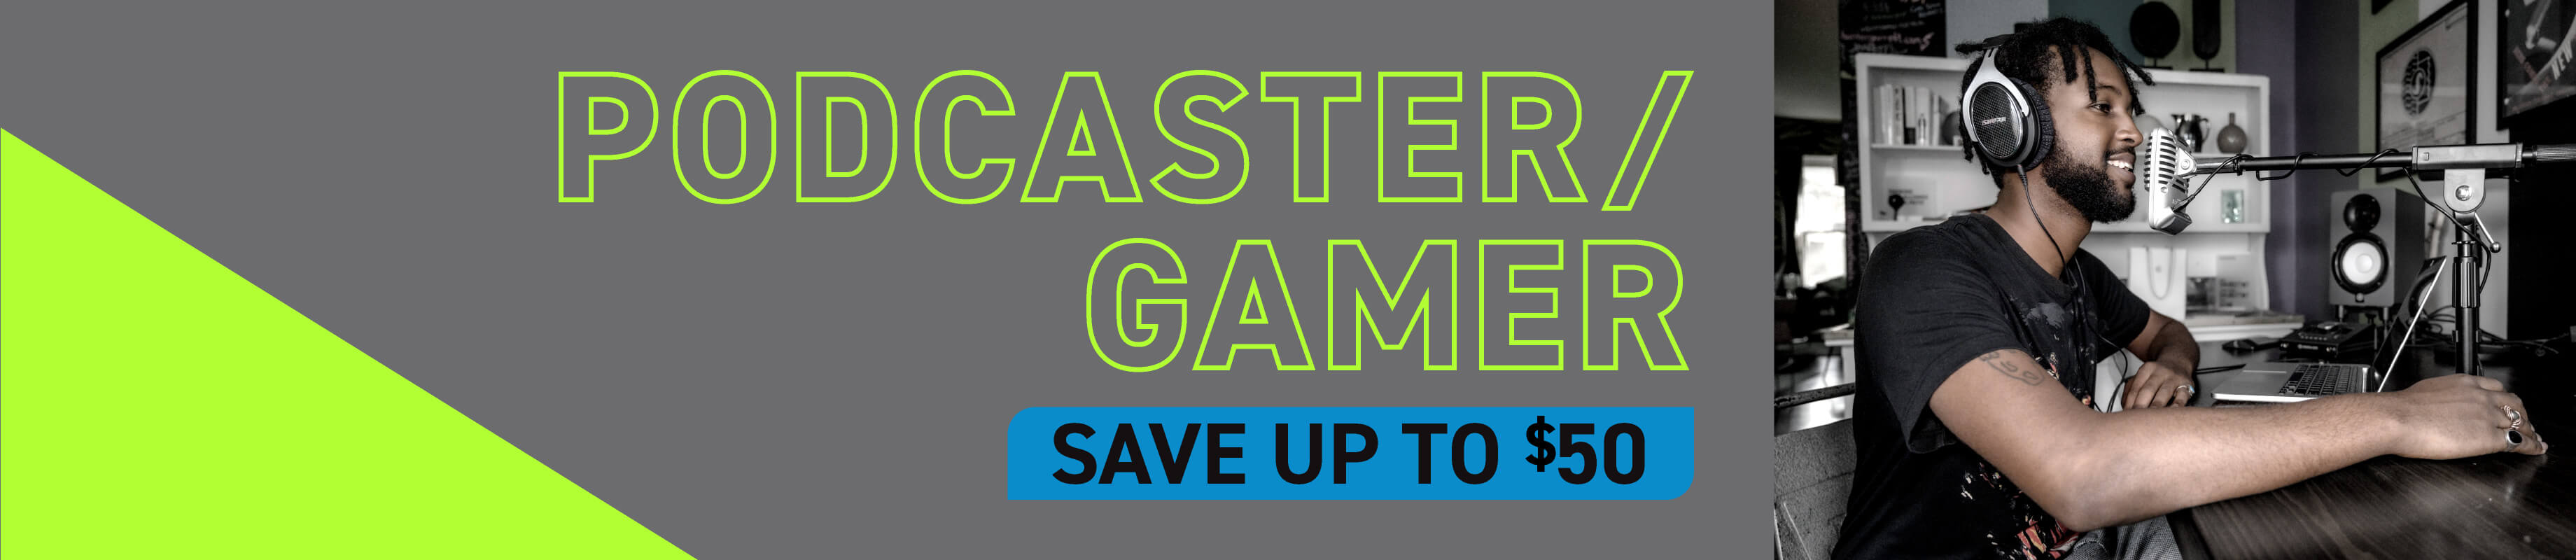 Podcaster and Gamers | Save up to $30